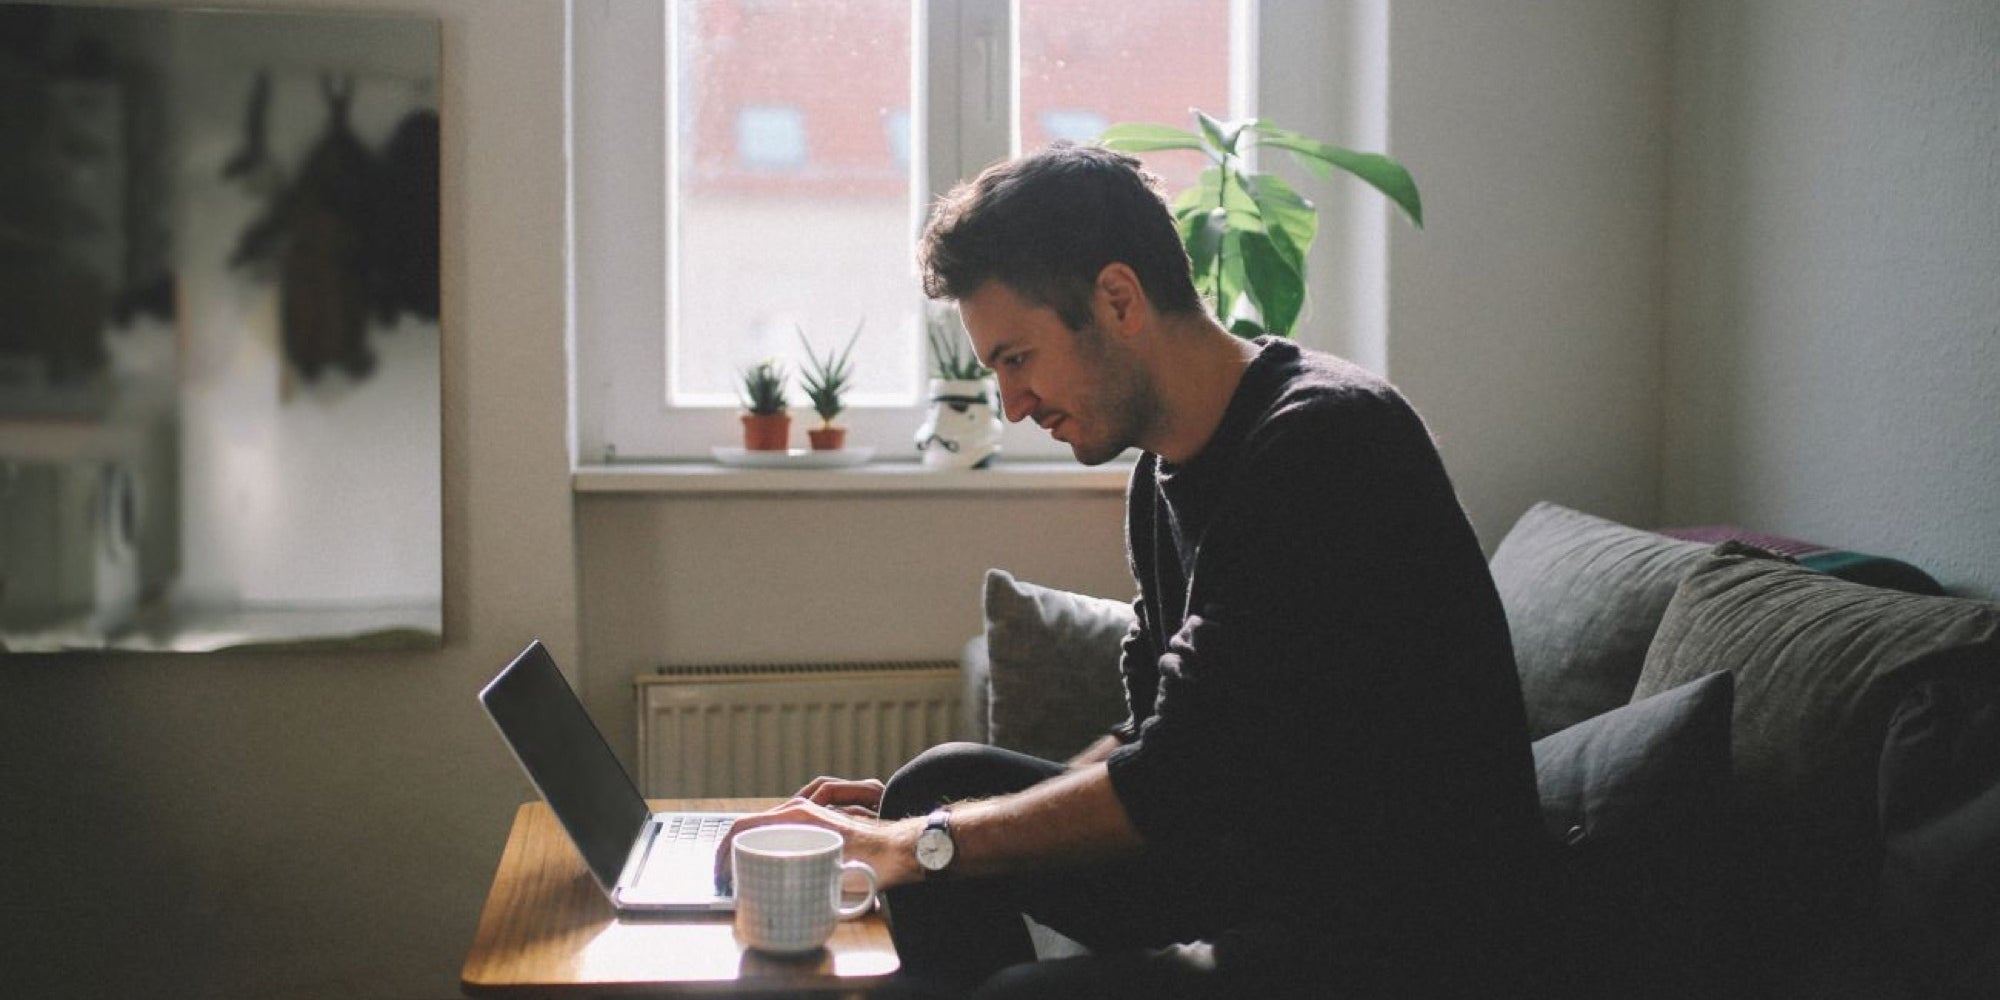 Remote Workers Often Feel Snubbed by Co-workers, So Here Are 5 Ways to Make Them Feel More Connected